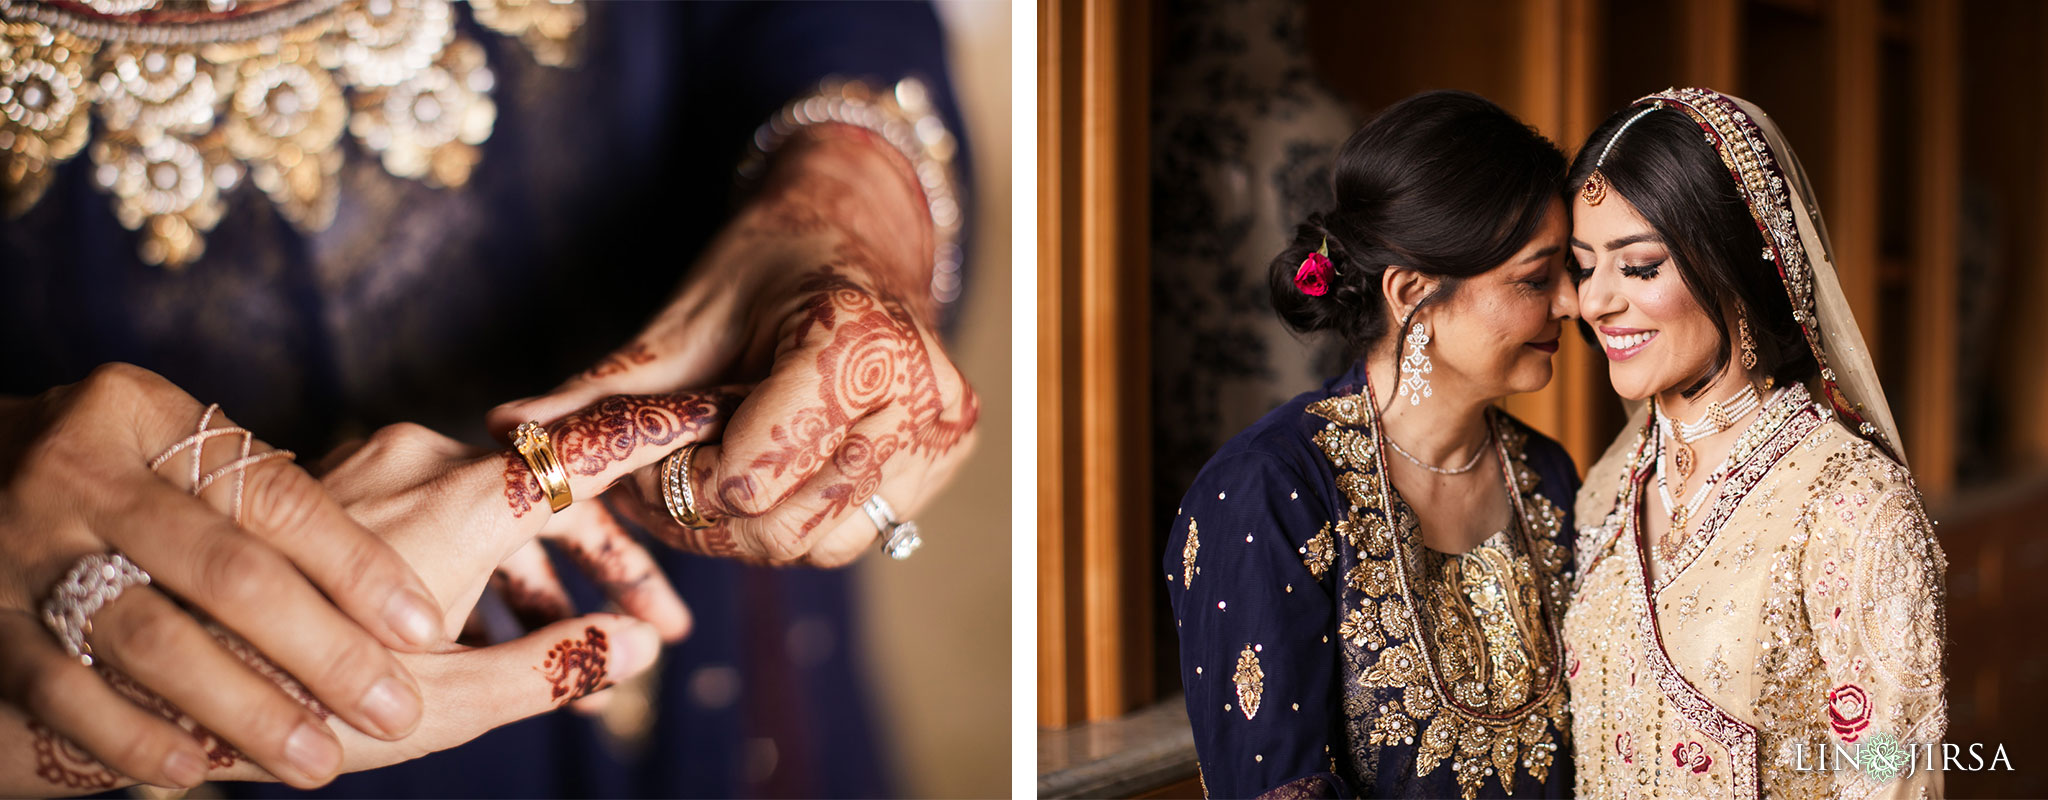 003 four seasons westlake village muslim wedding photography